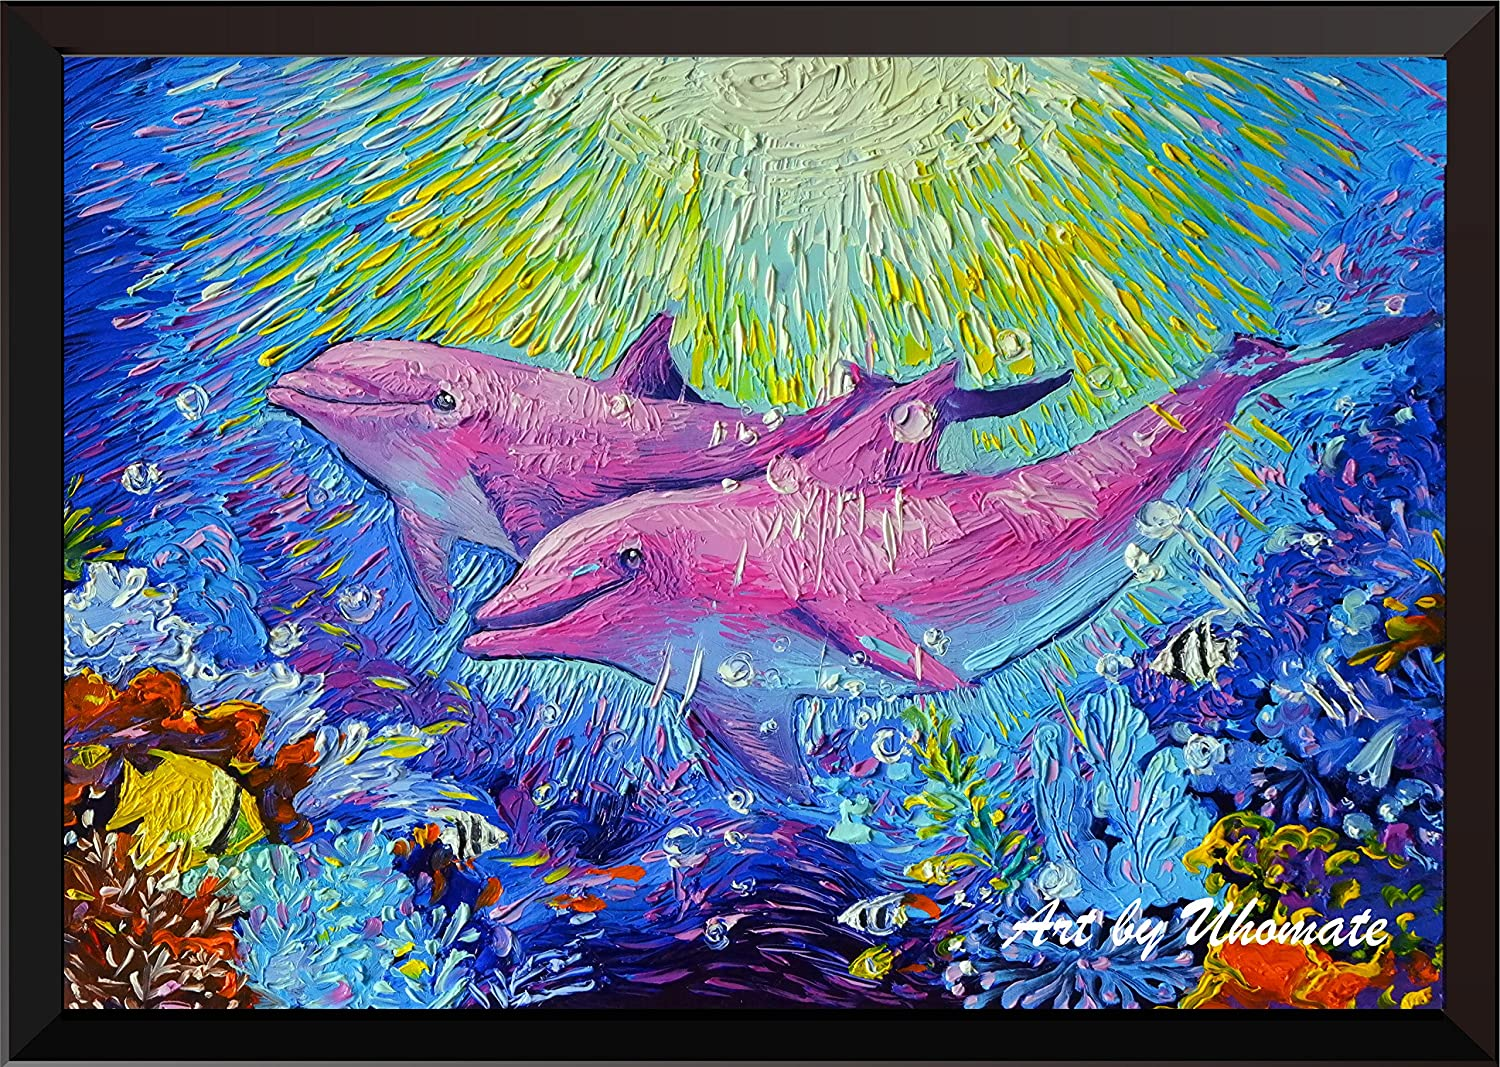 Uhomate Pink Dolphins Sea Animals Wall Decor Vincent Van Gogh Starry Night Posters Home Canvas Wall Art Print Nursery Decor Living Room Wall Decor A100 (8X10)